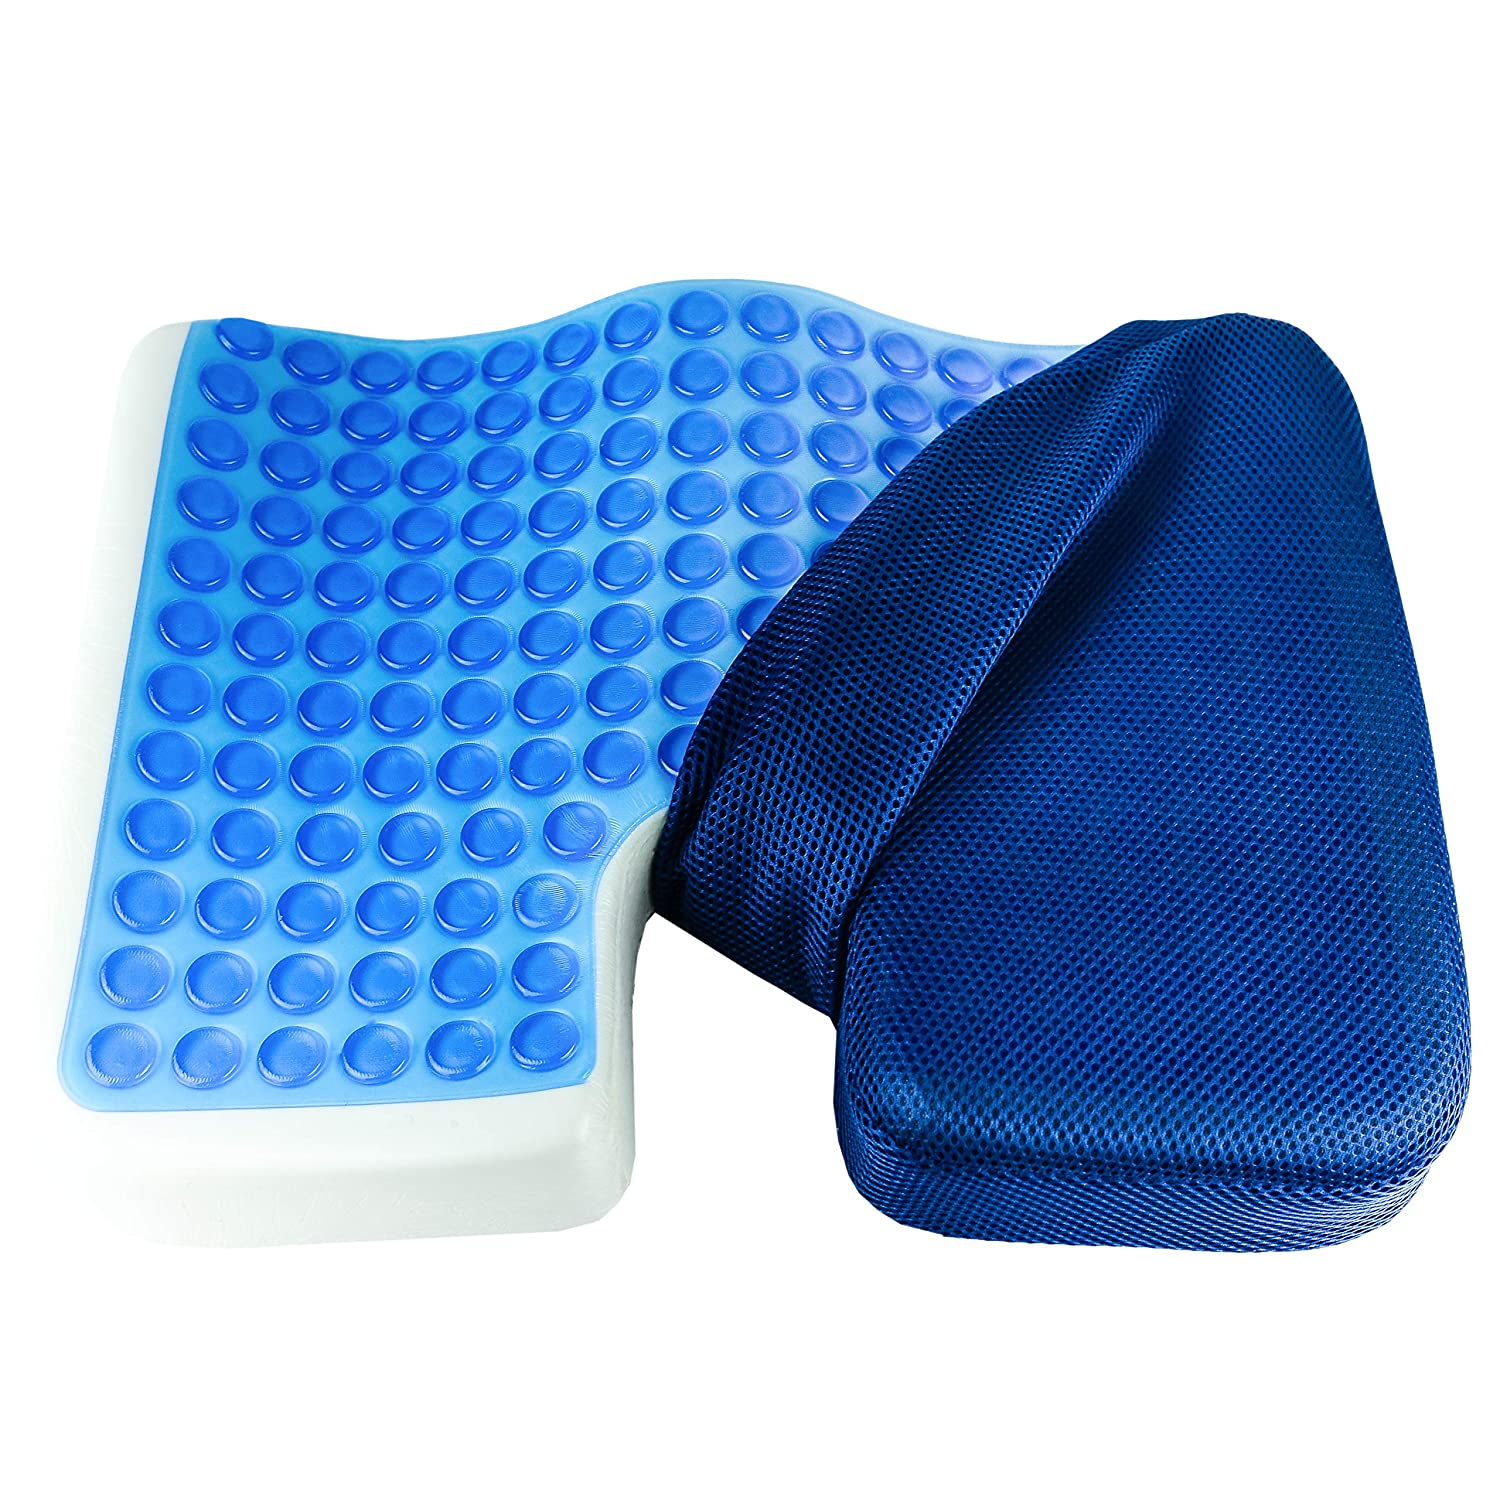 Galashield Coccyx Cushion Cool Gel Seat Cushion Memory Foam Pillow Orthopedic Tailbone and Sciatica Pain Relief with Mesh Cover Great for Office Car Seat and Wheelchair